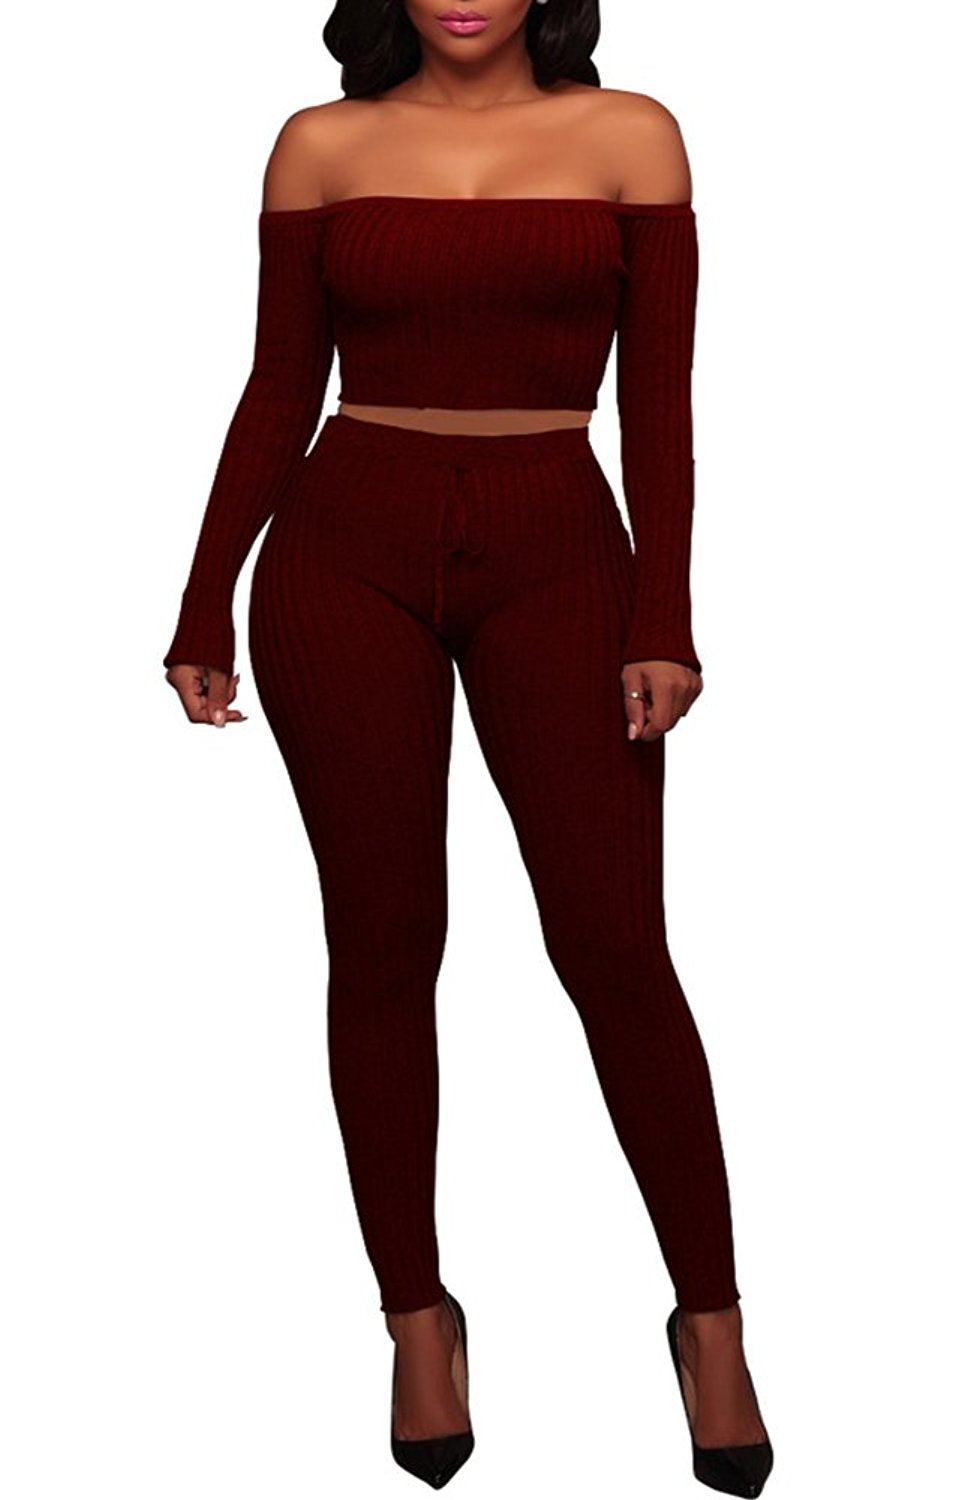 Women's Knitted Off Shoulder Crop Top Long Pants Set 2 Pieces Jumpsuits